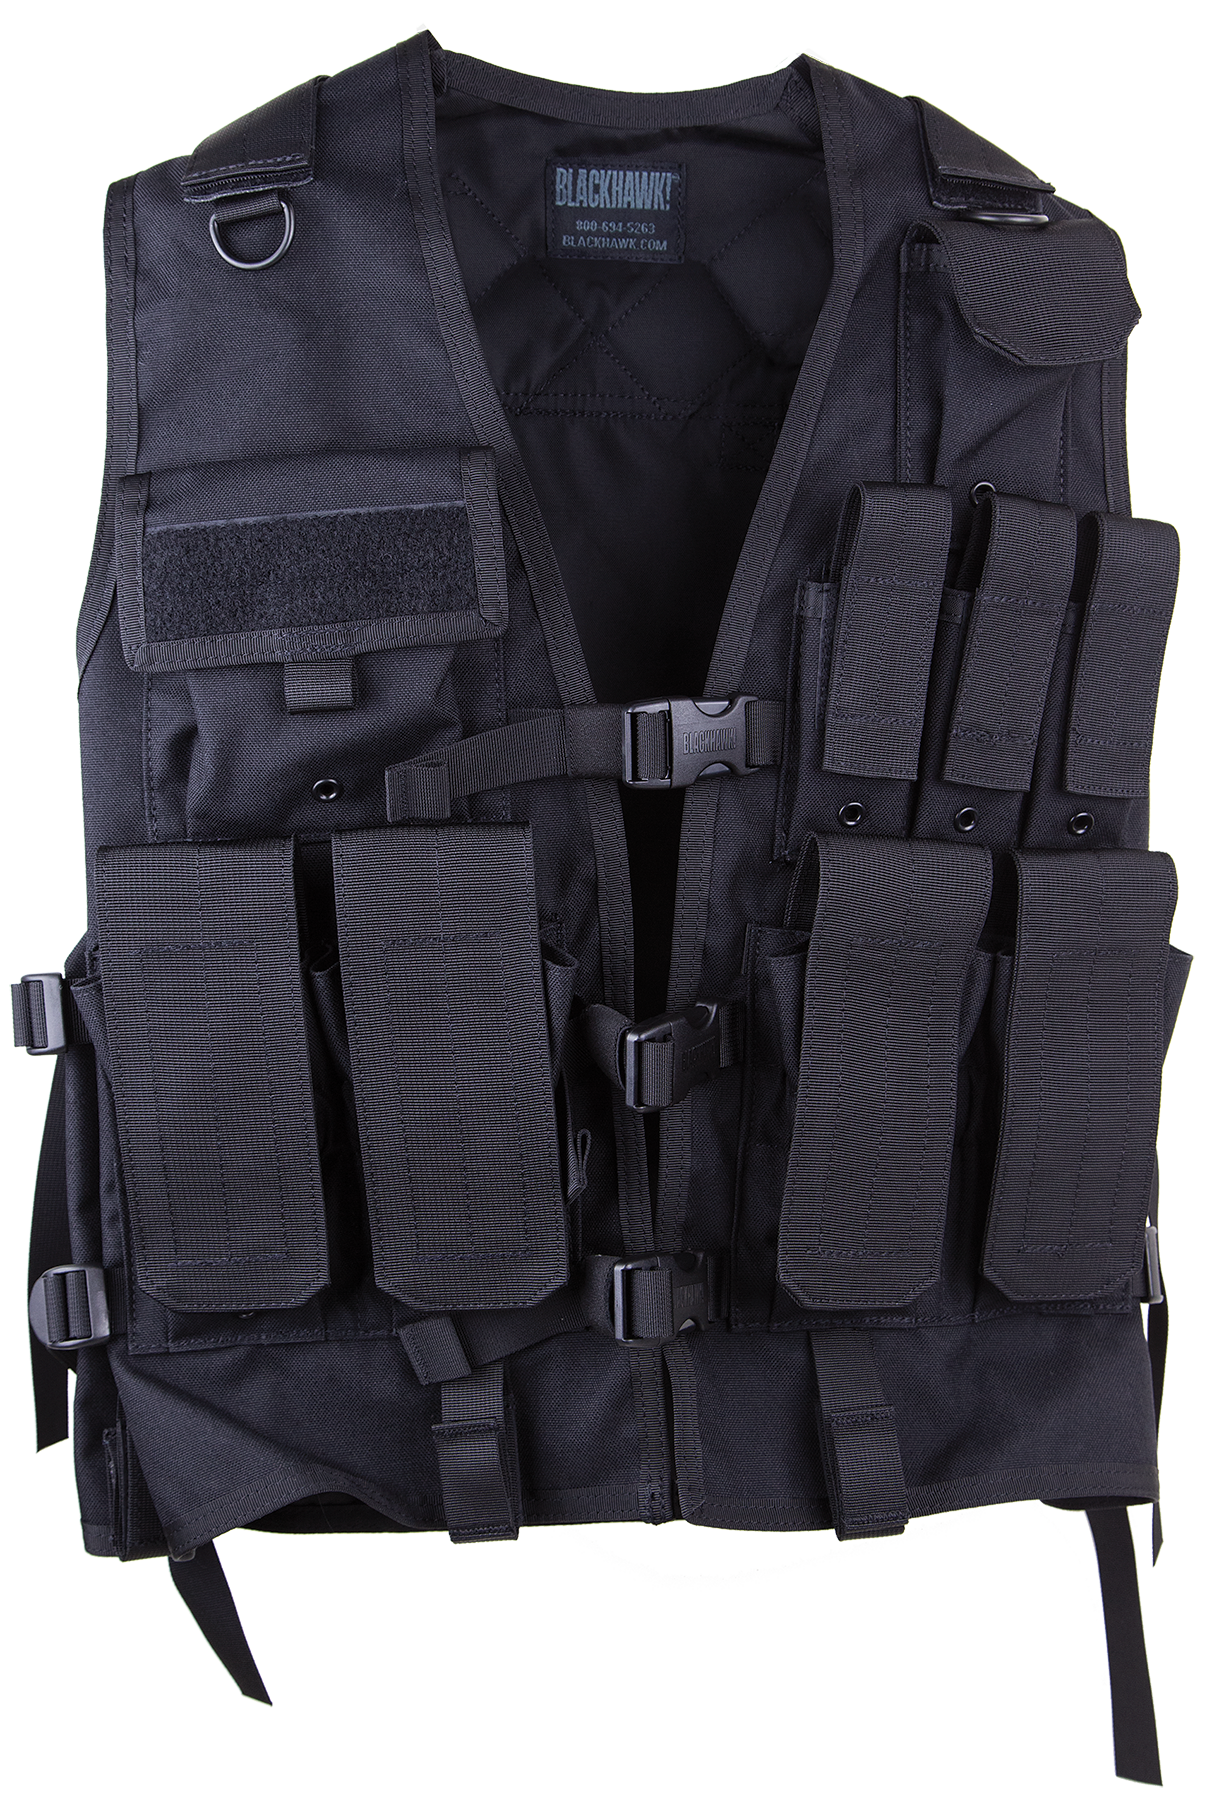 Blackhawk 33UA00BK Urban Assault Vest Black Adjustable Nylon